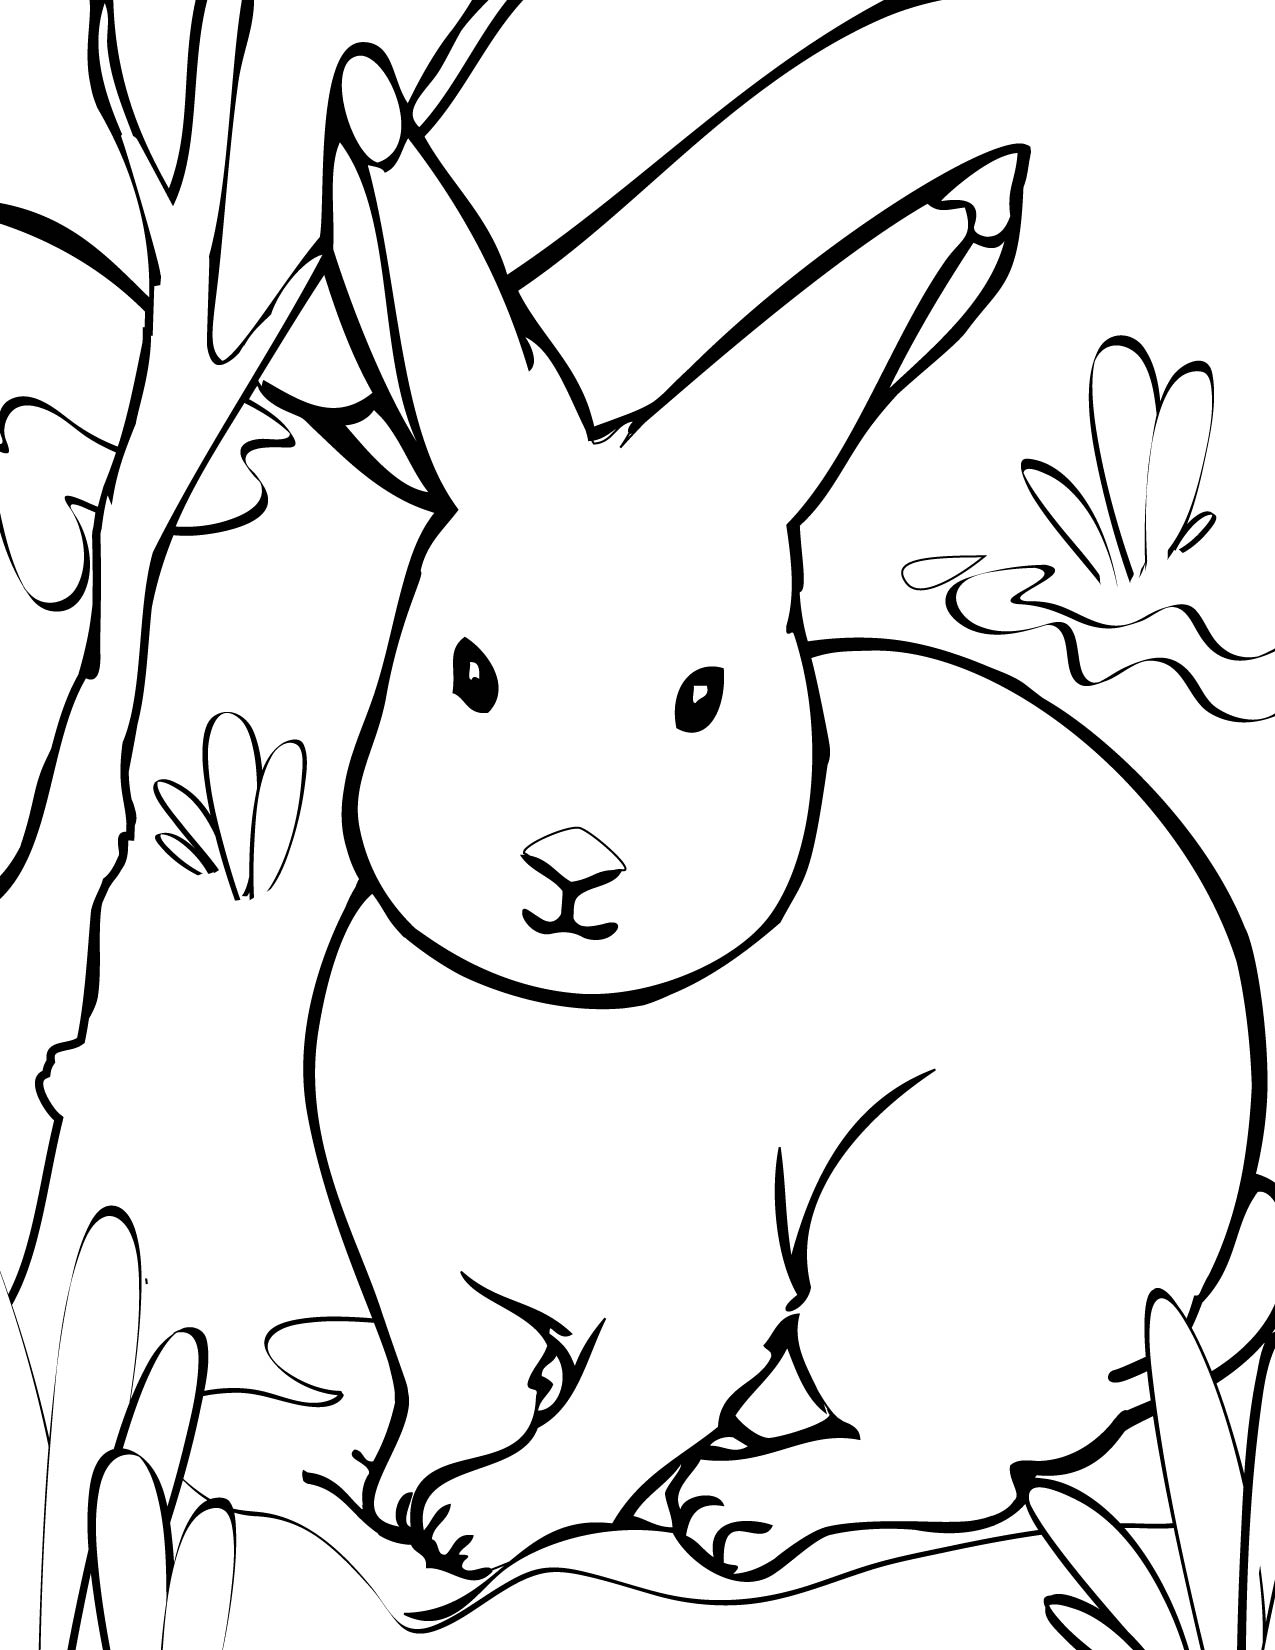 Arctic Hare svg #14, Download drawings